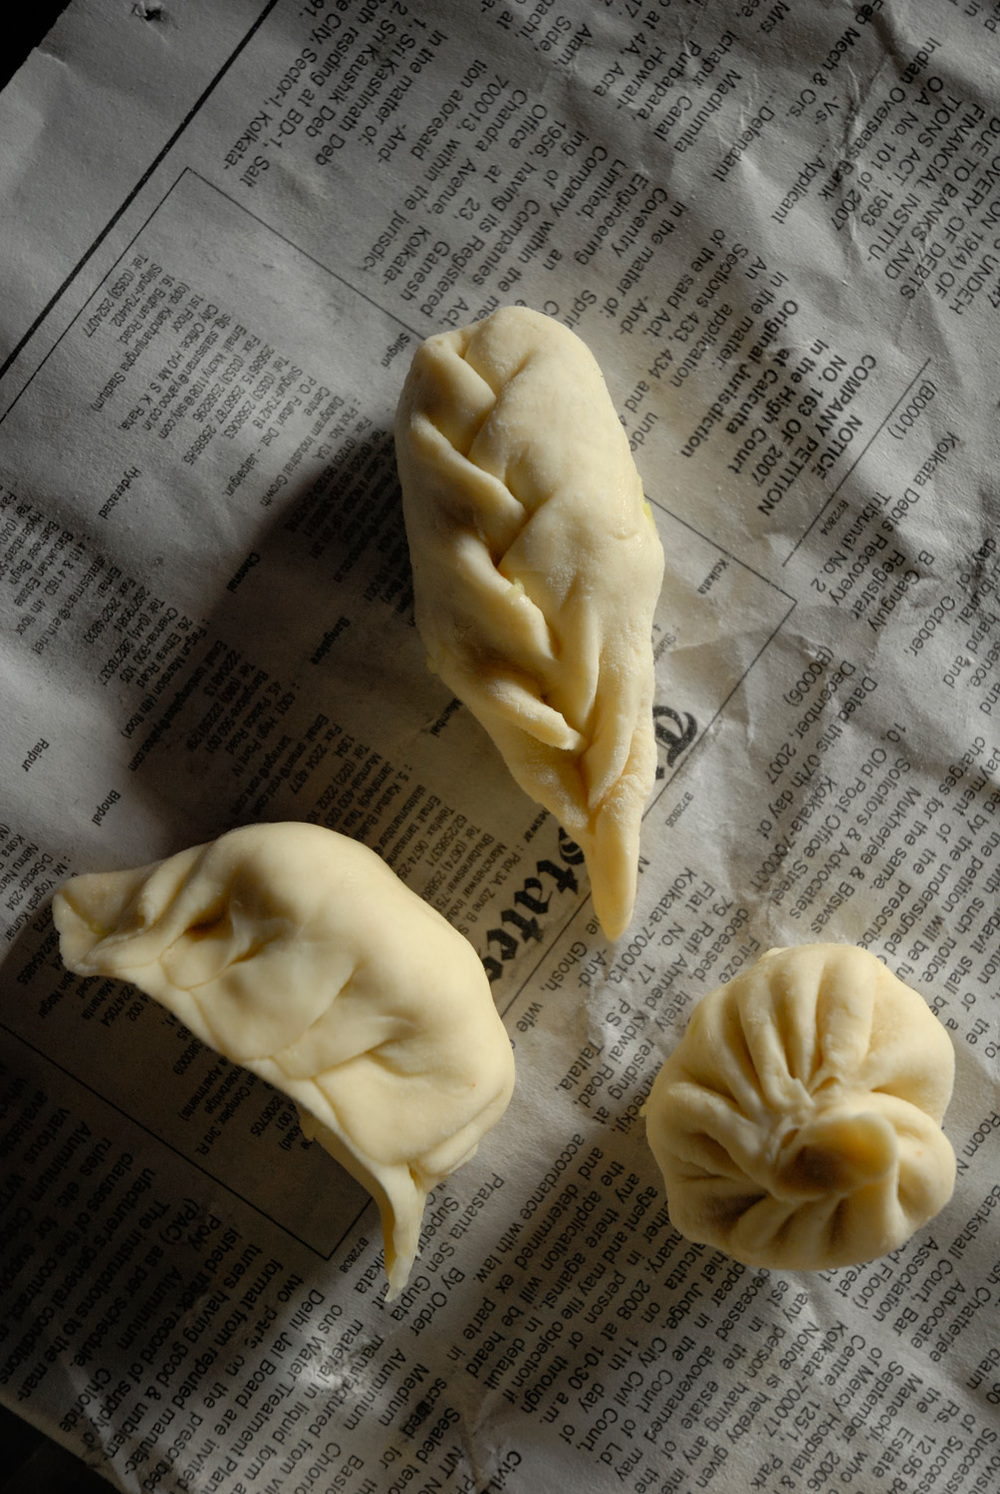 Dumplings in Darjeeling, India